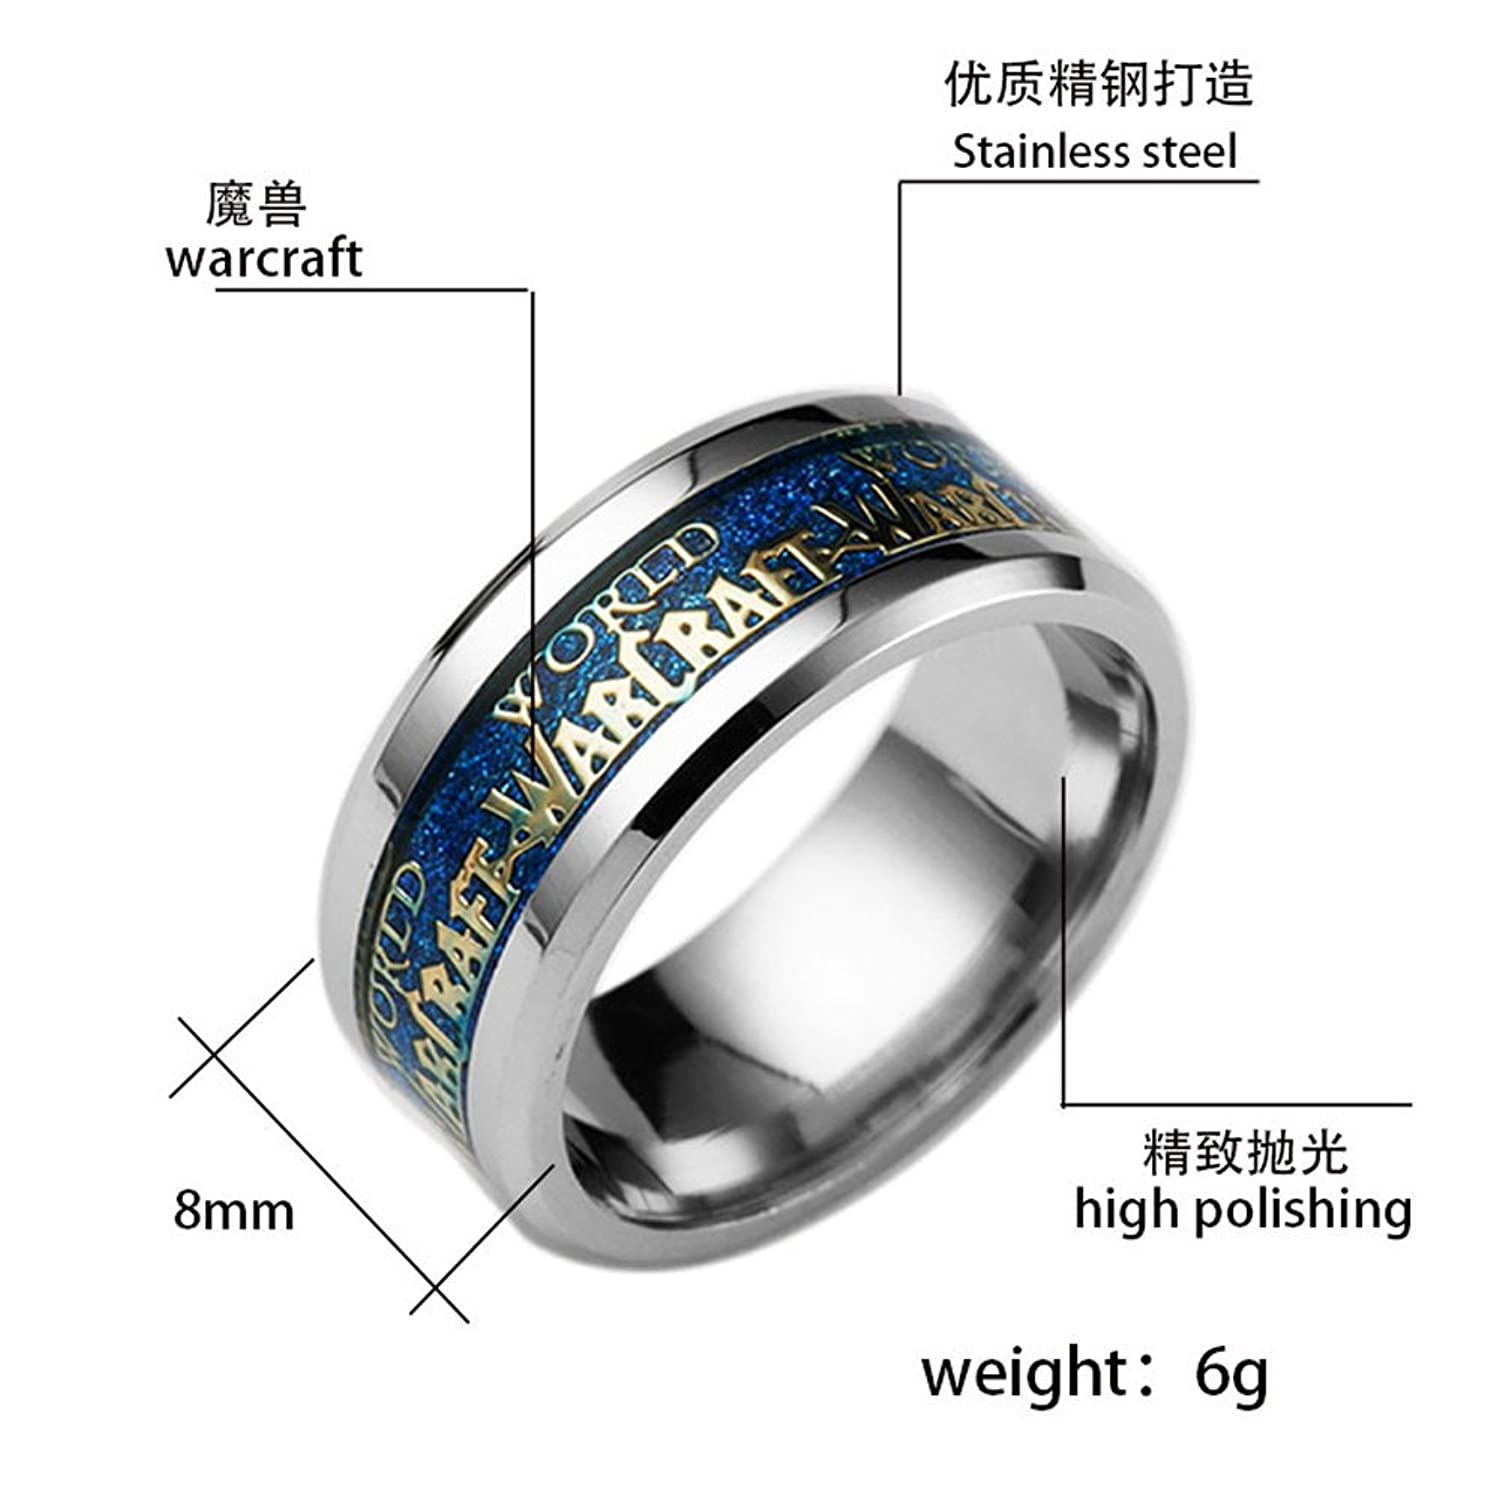 B stainless steel wedding bands Men Jewelry World of Warcraft Stainless Steel Ring Men Lord of the Rings Titanium Ring Amazon com